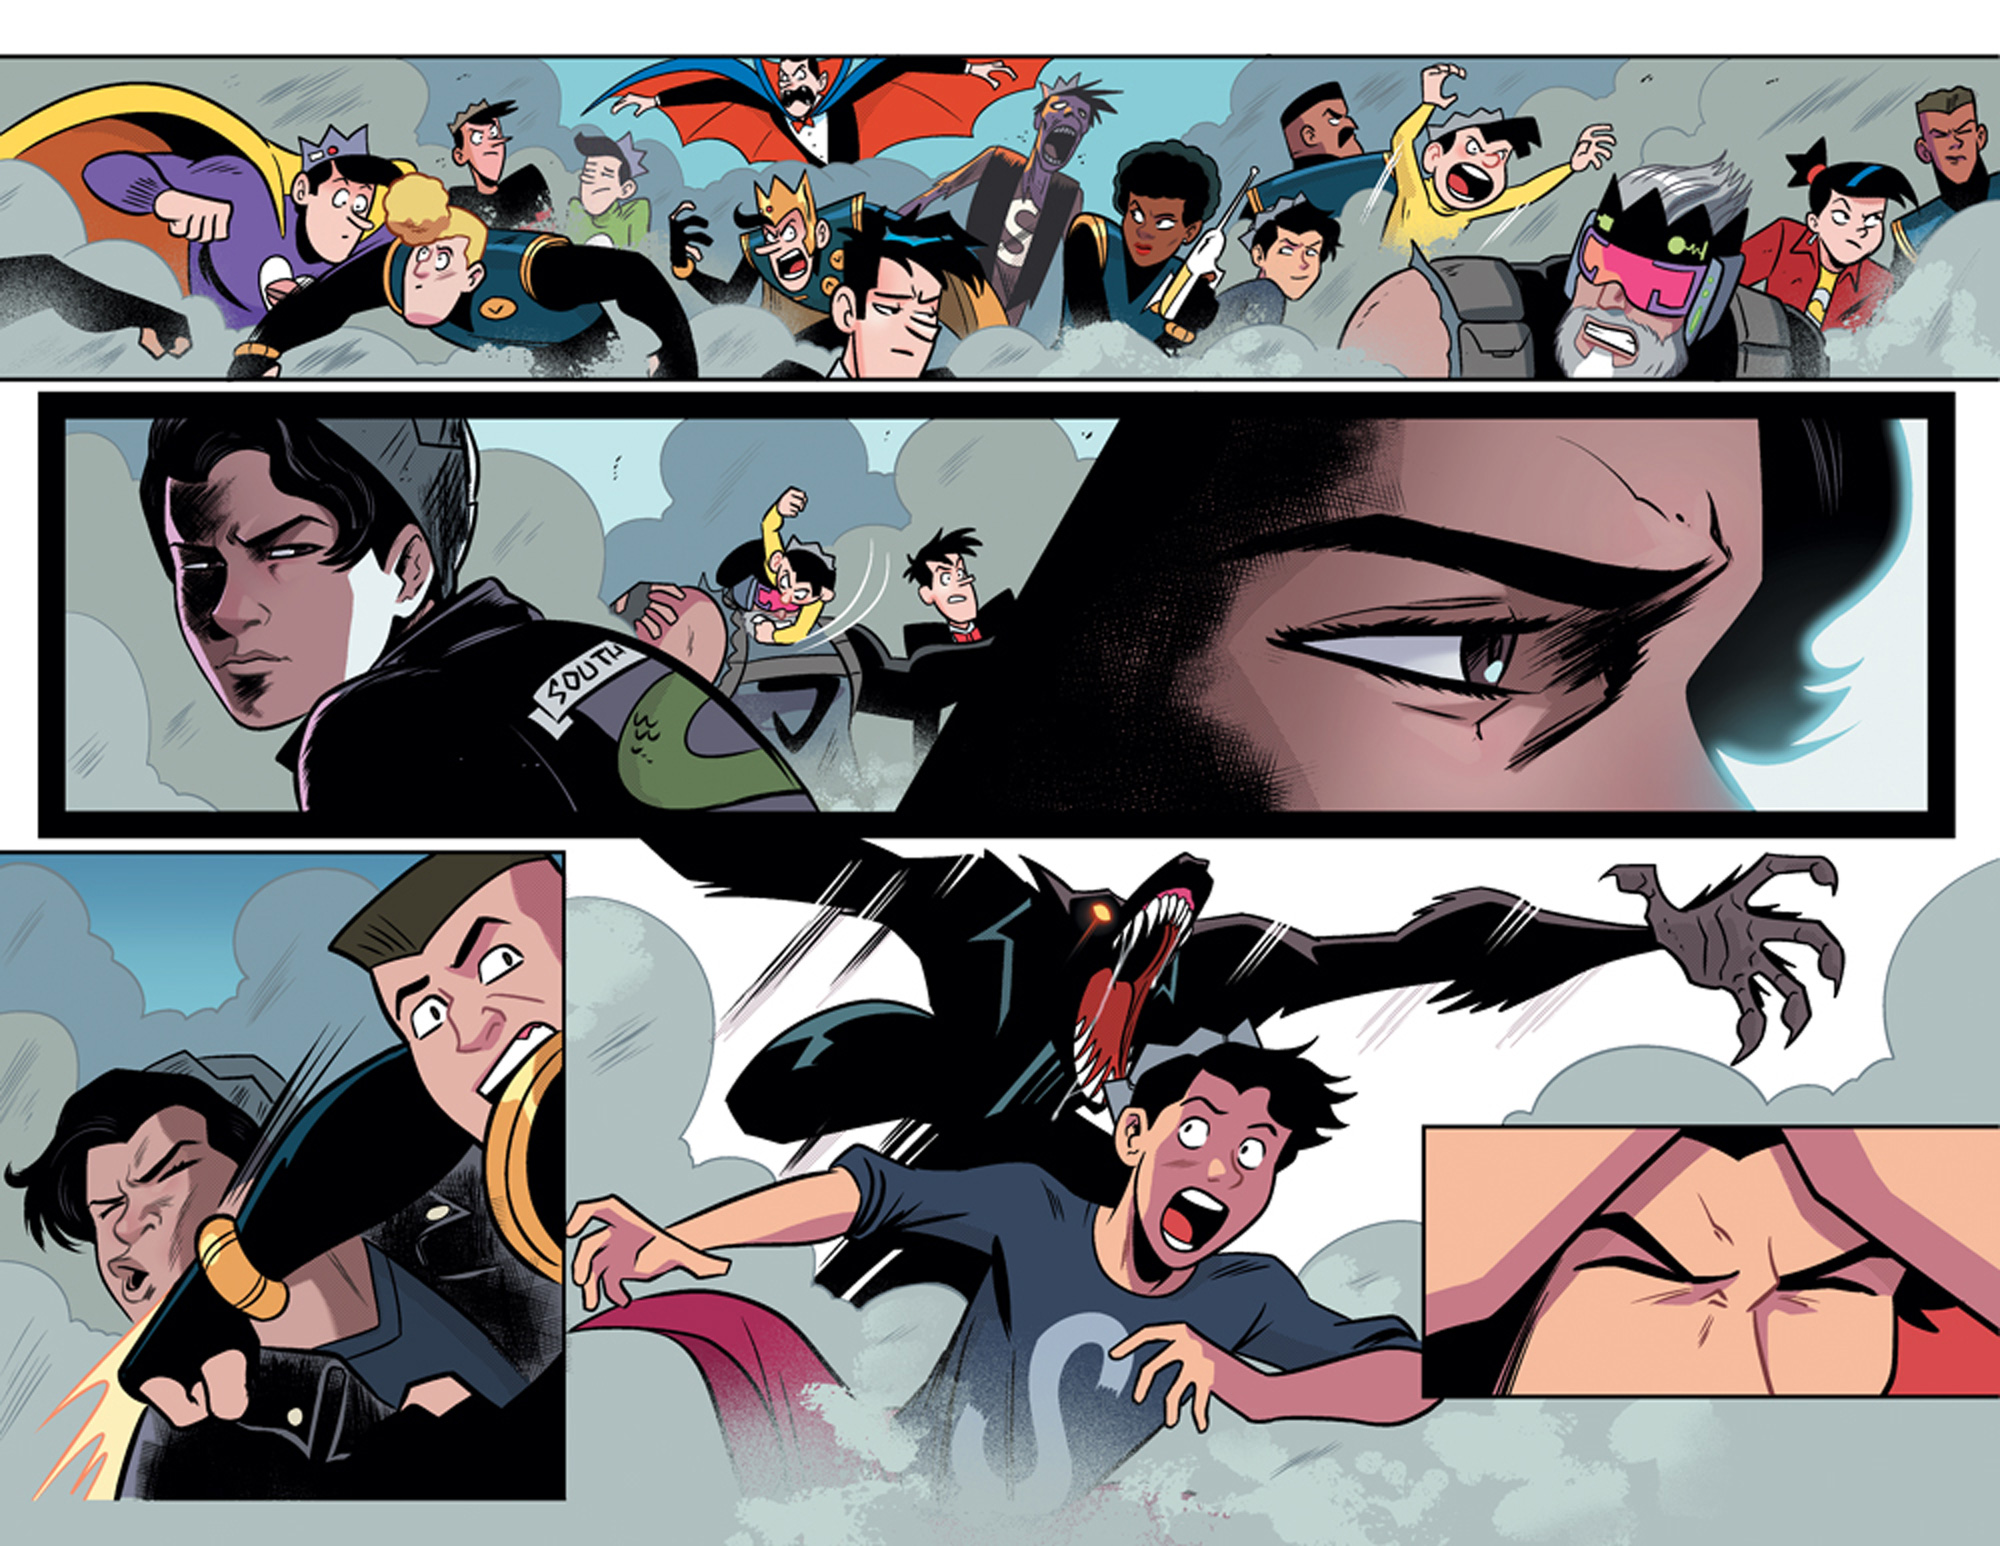 The insane battle between Jugheads in Jughead's Time Police #5.